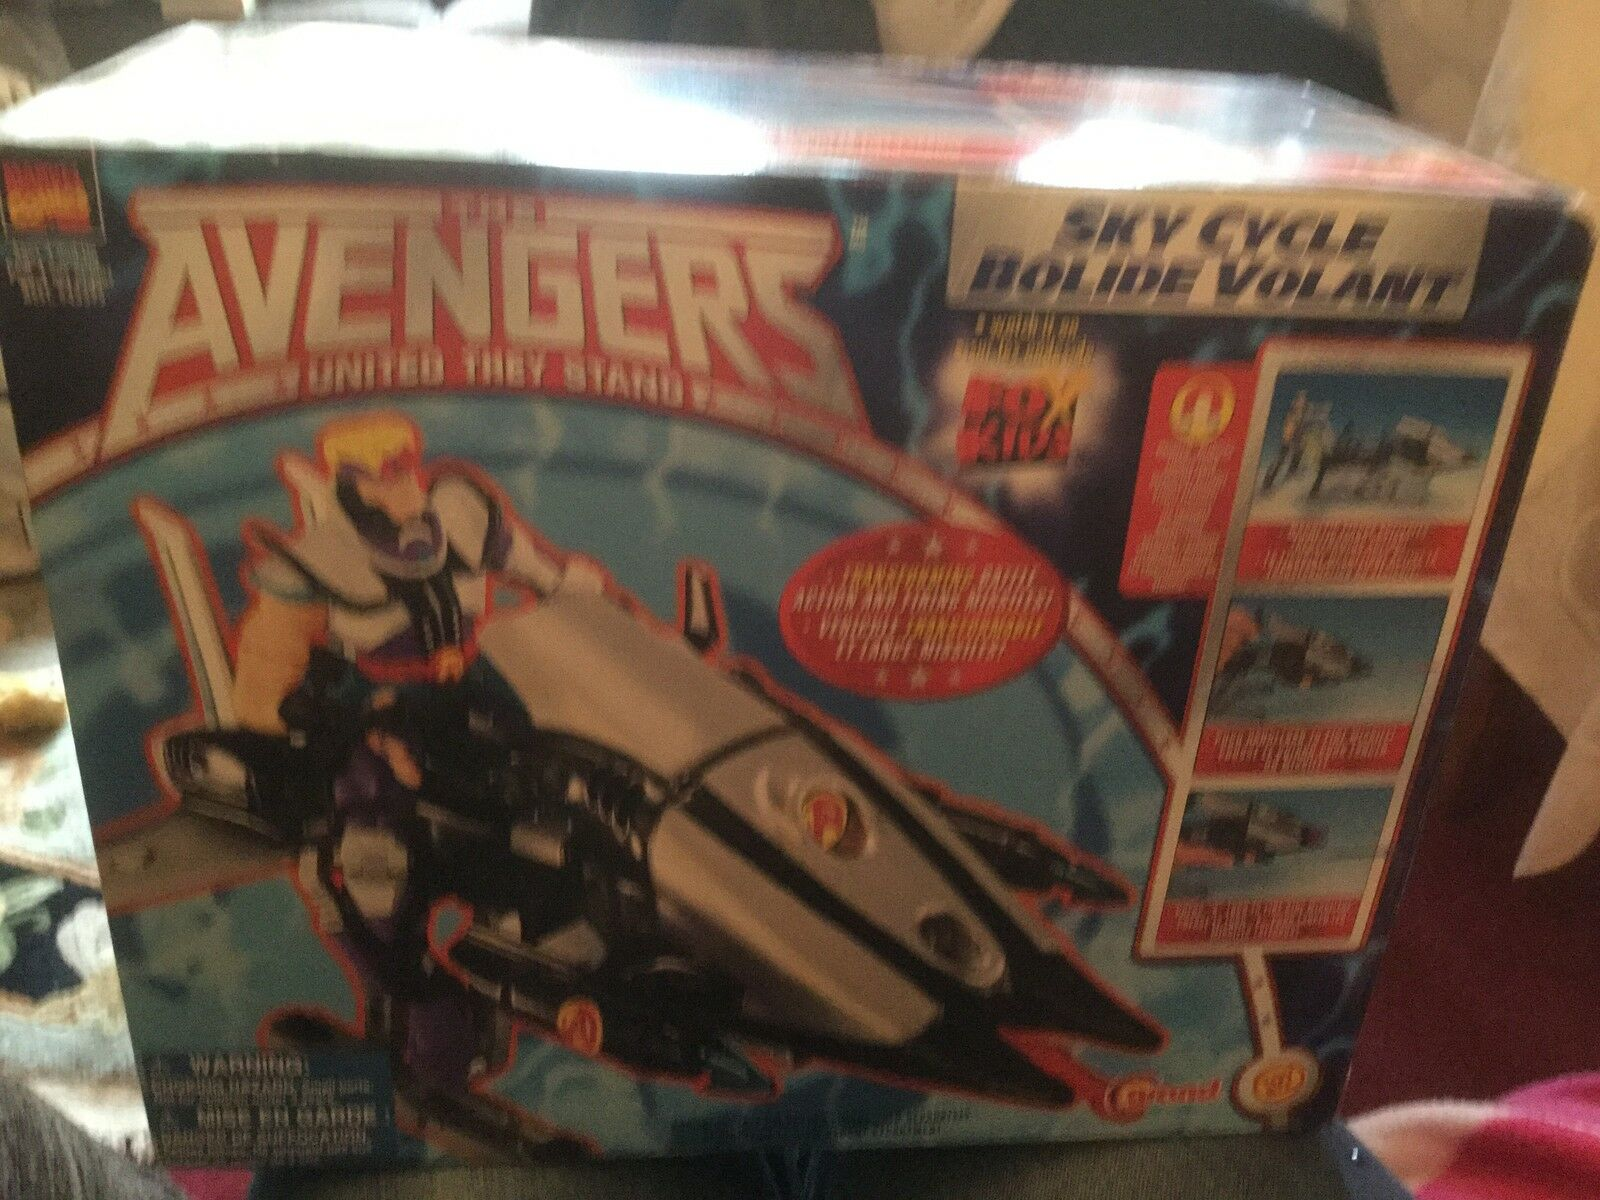 MARVEL COMICS THE AVENGERS SKY CYCLE VEHICLE UNITED THEY STAND STAND STAND NEW BOXED fc6f54